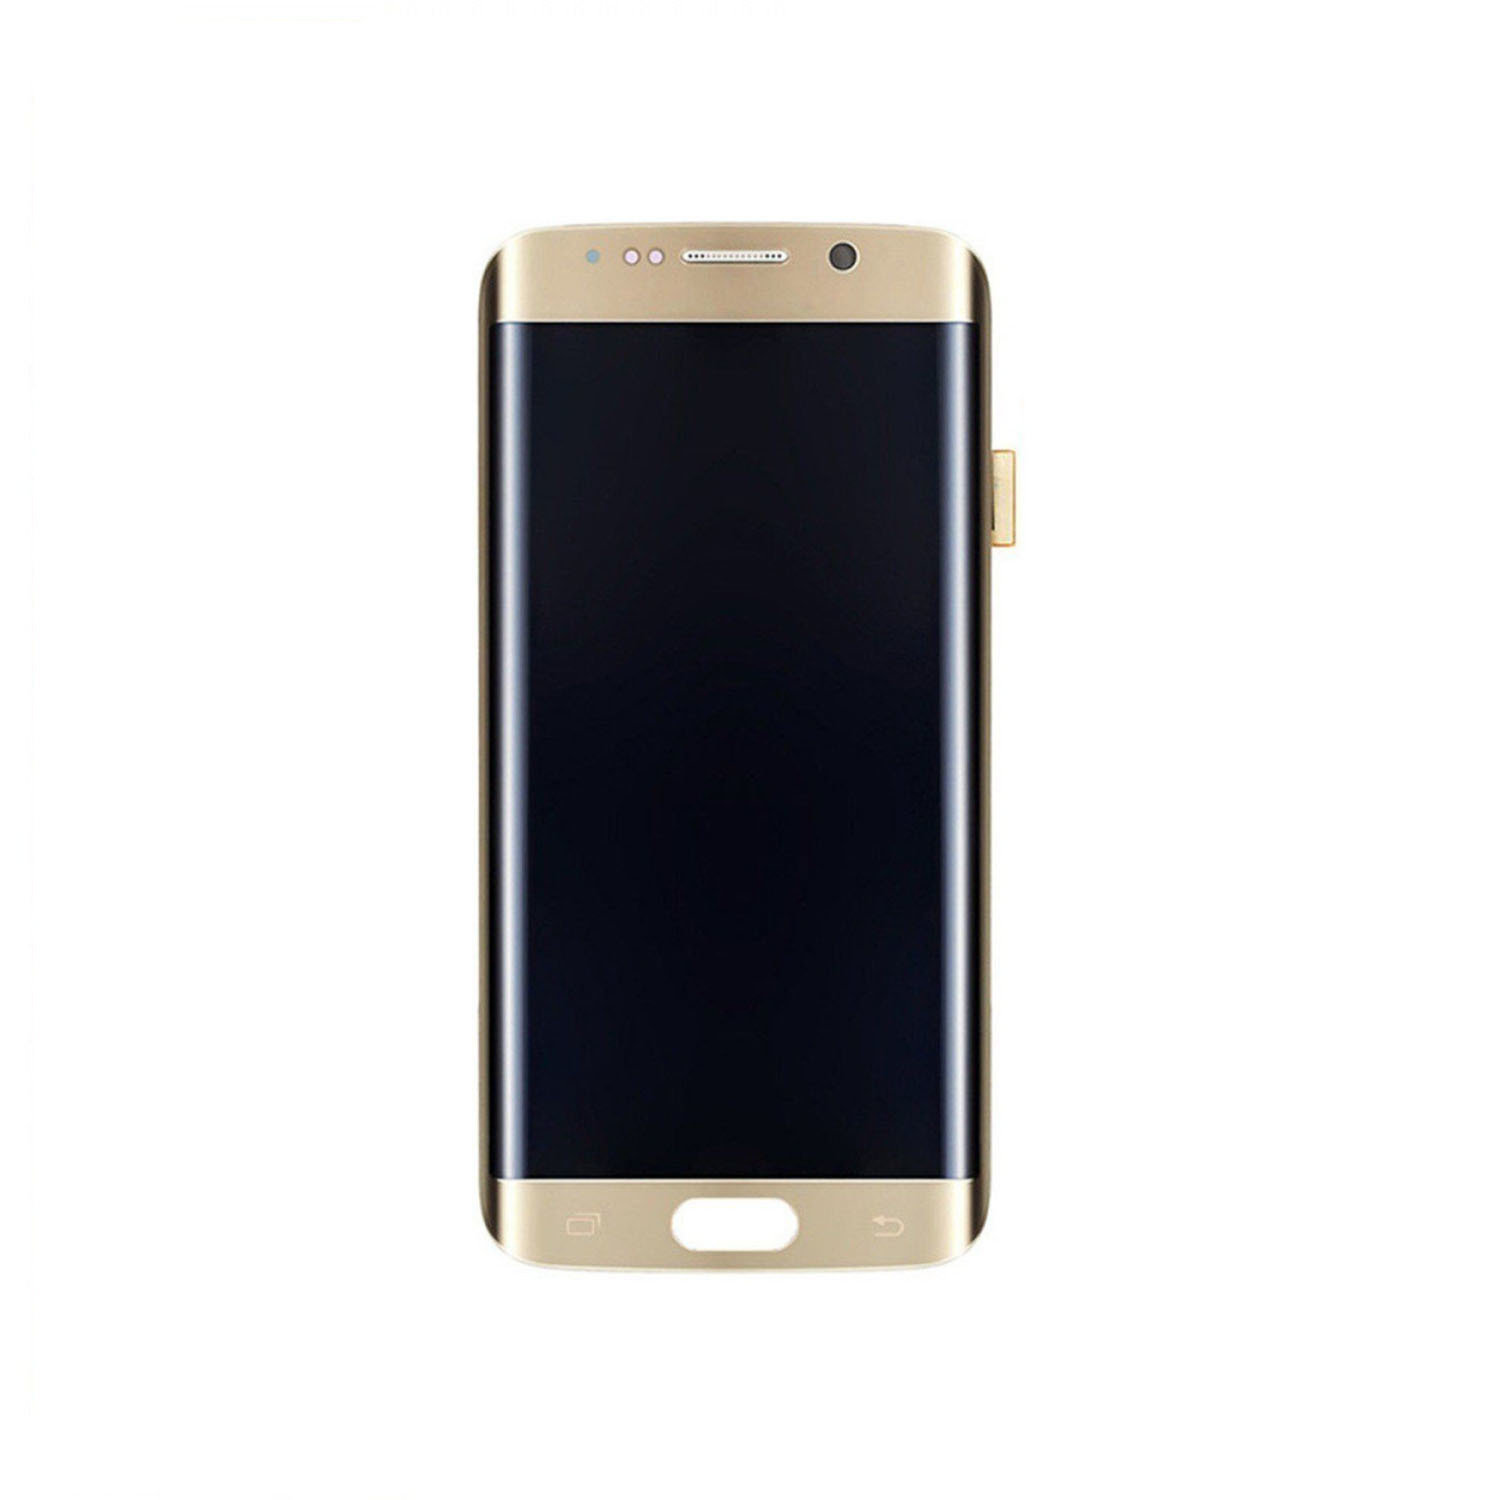 Samsung Galaxy S7 Edge Screen Replacement - Gold